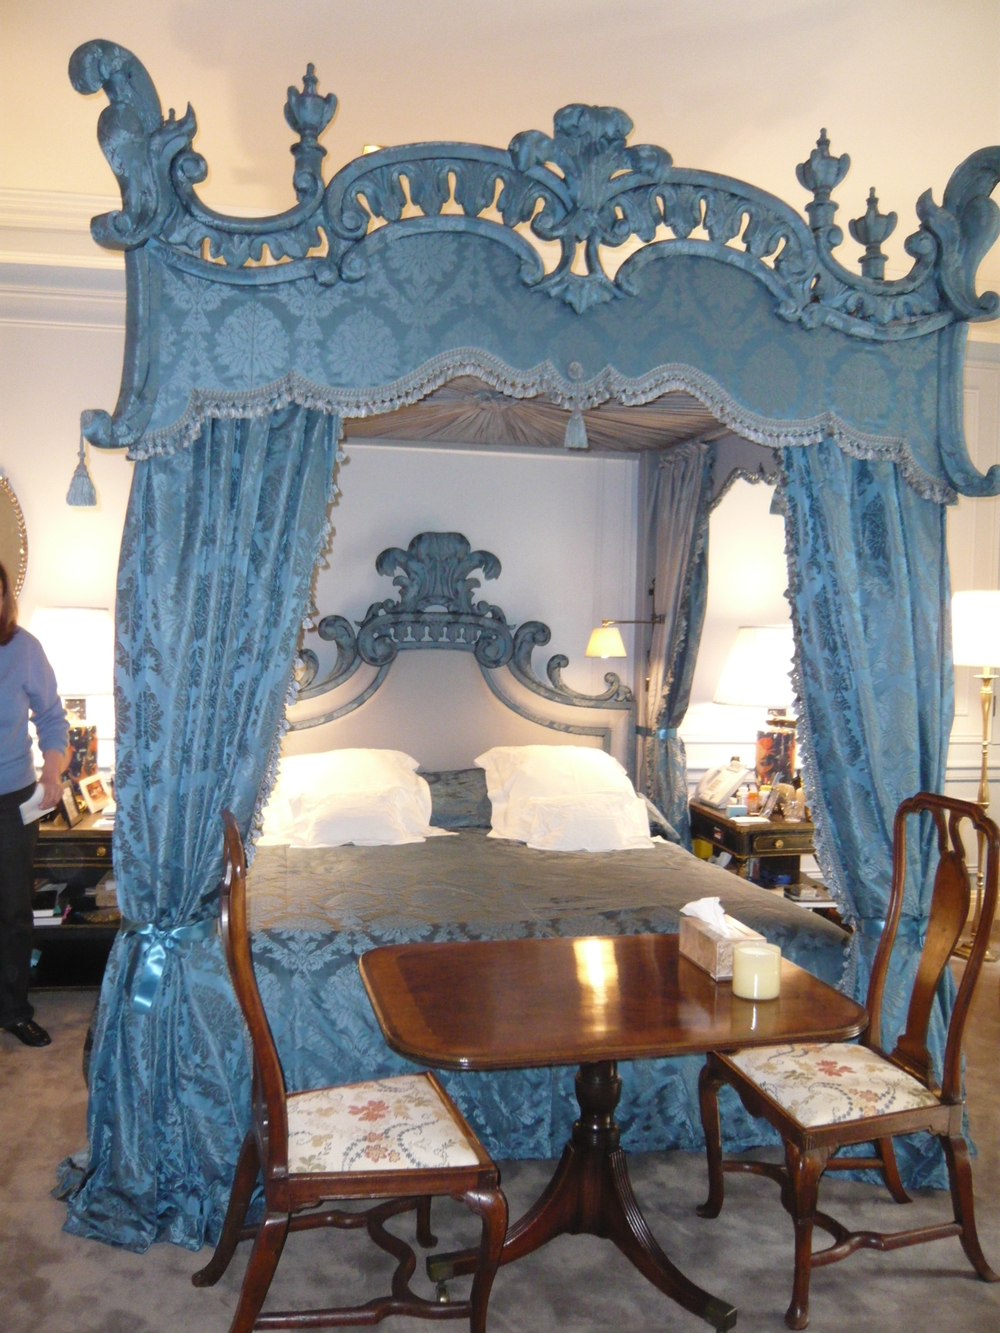 3 Carved silk clad bed.jpg